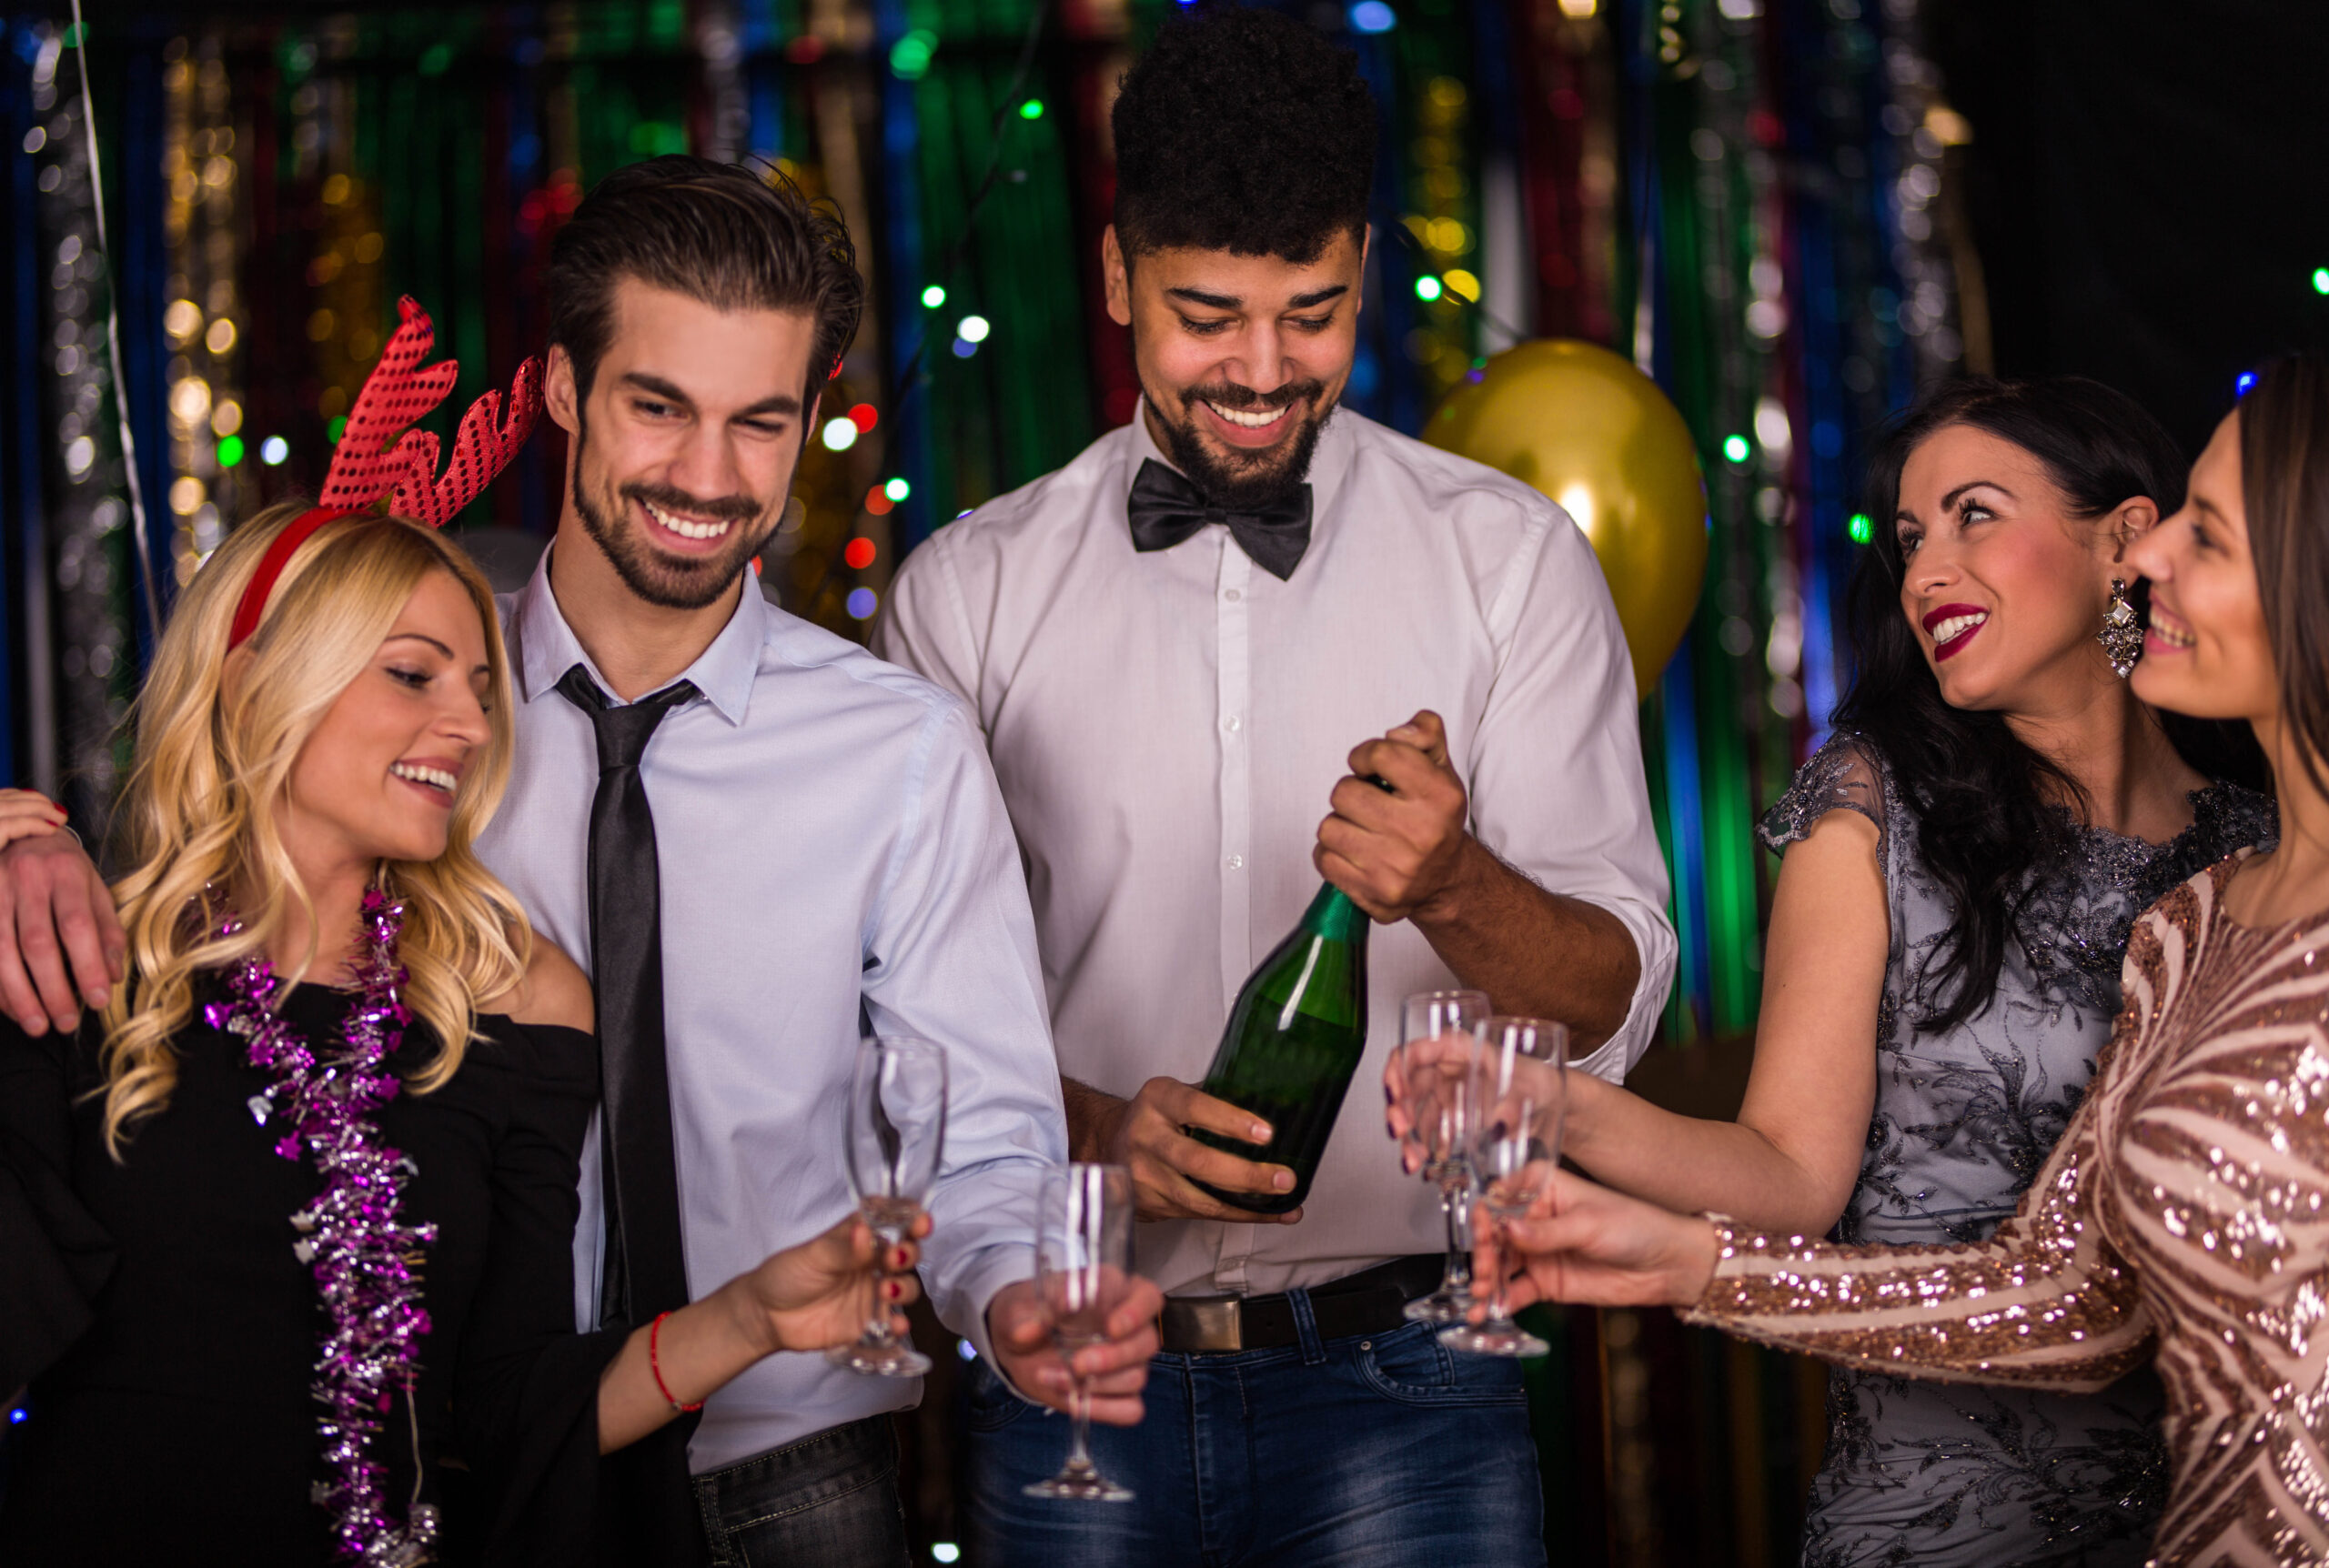 holidays at JB's on 41 | nye at the bowling lanes | safe fun for nye | JB's on 41 | Milwaukee, WI